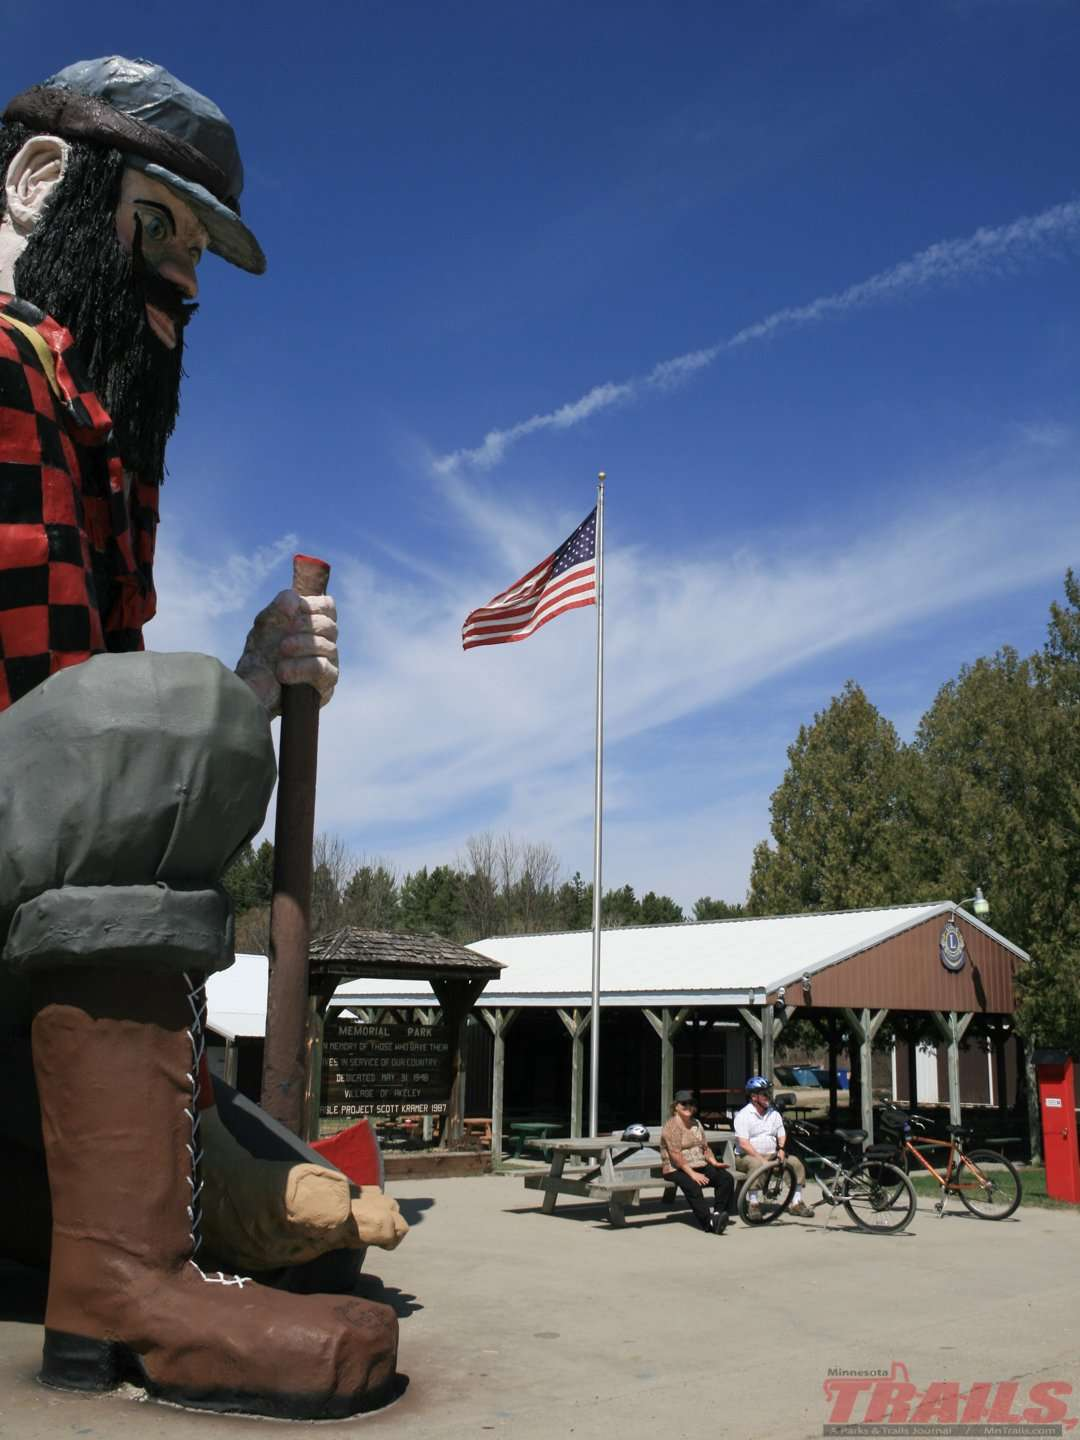 At the Akeley trailhead Paul Bunyan has been inviting visitors for a photo op since 1985 on the Heartland State Trail